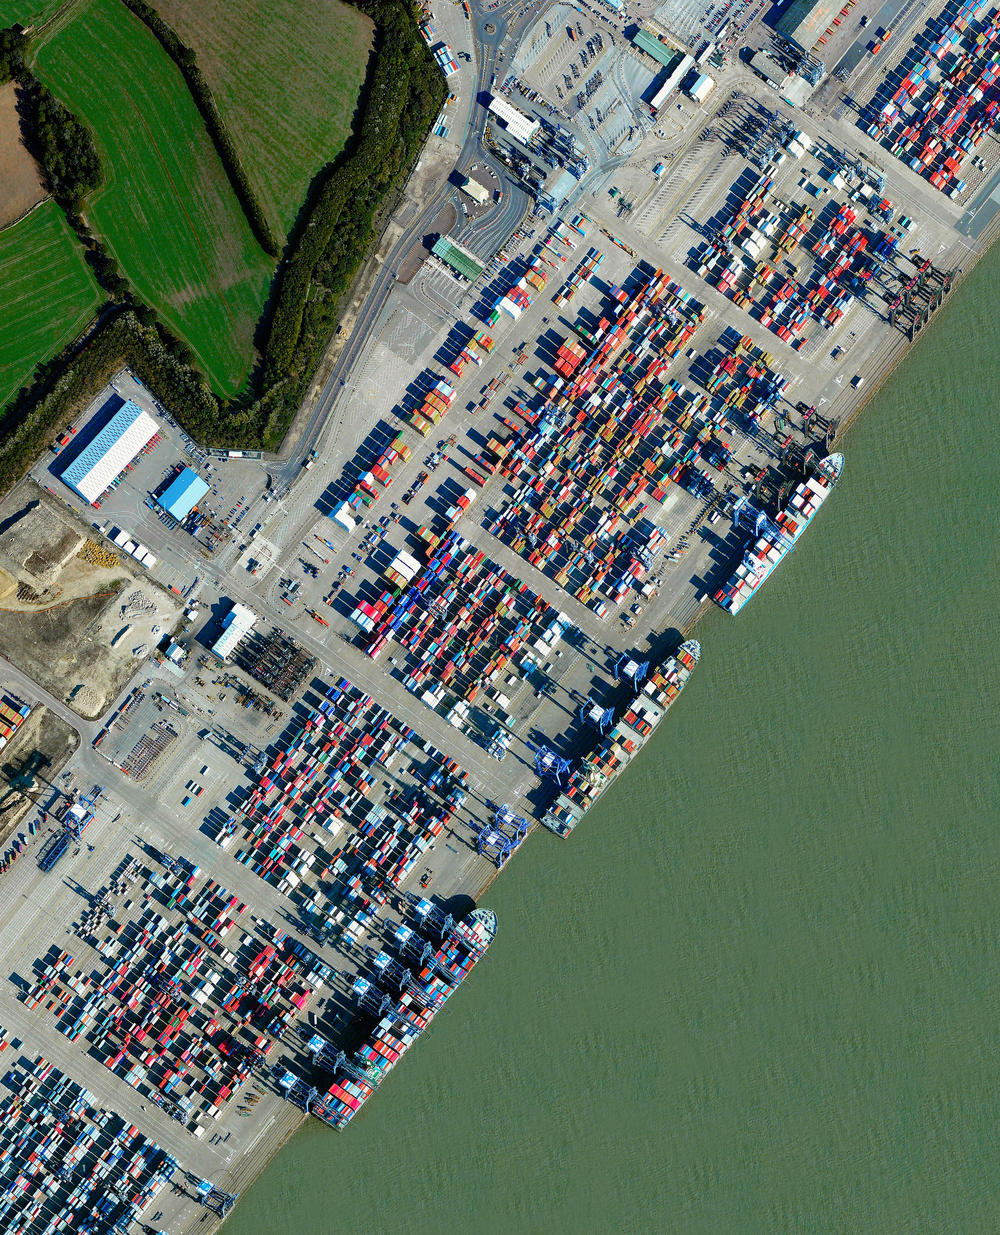 1/2/2016 Port of Felixstowe Felixstowe, United Kingdom 51.954171°N 1.310158°E   The Port of Felixstowe is the busiest port in the United Kingdom, handling approximately 42% of the country's trade of shipping containers. The facility is able to accommodate ships that extend more than 400 meters (1312 feet) and have a cargo carrying capacity that is greater than half the volume of the Empire State Building.